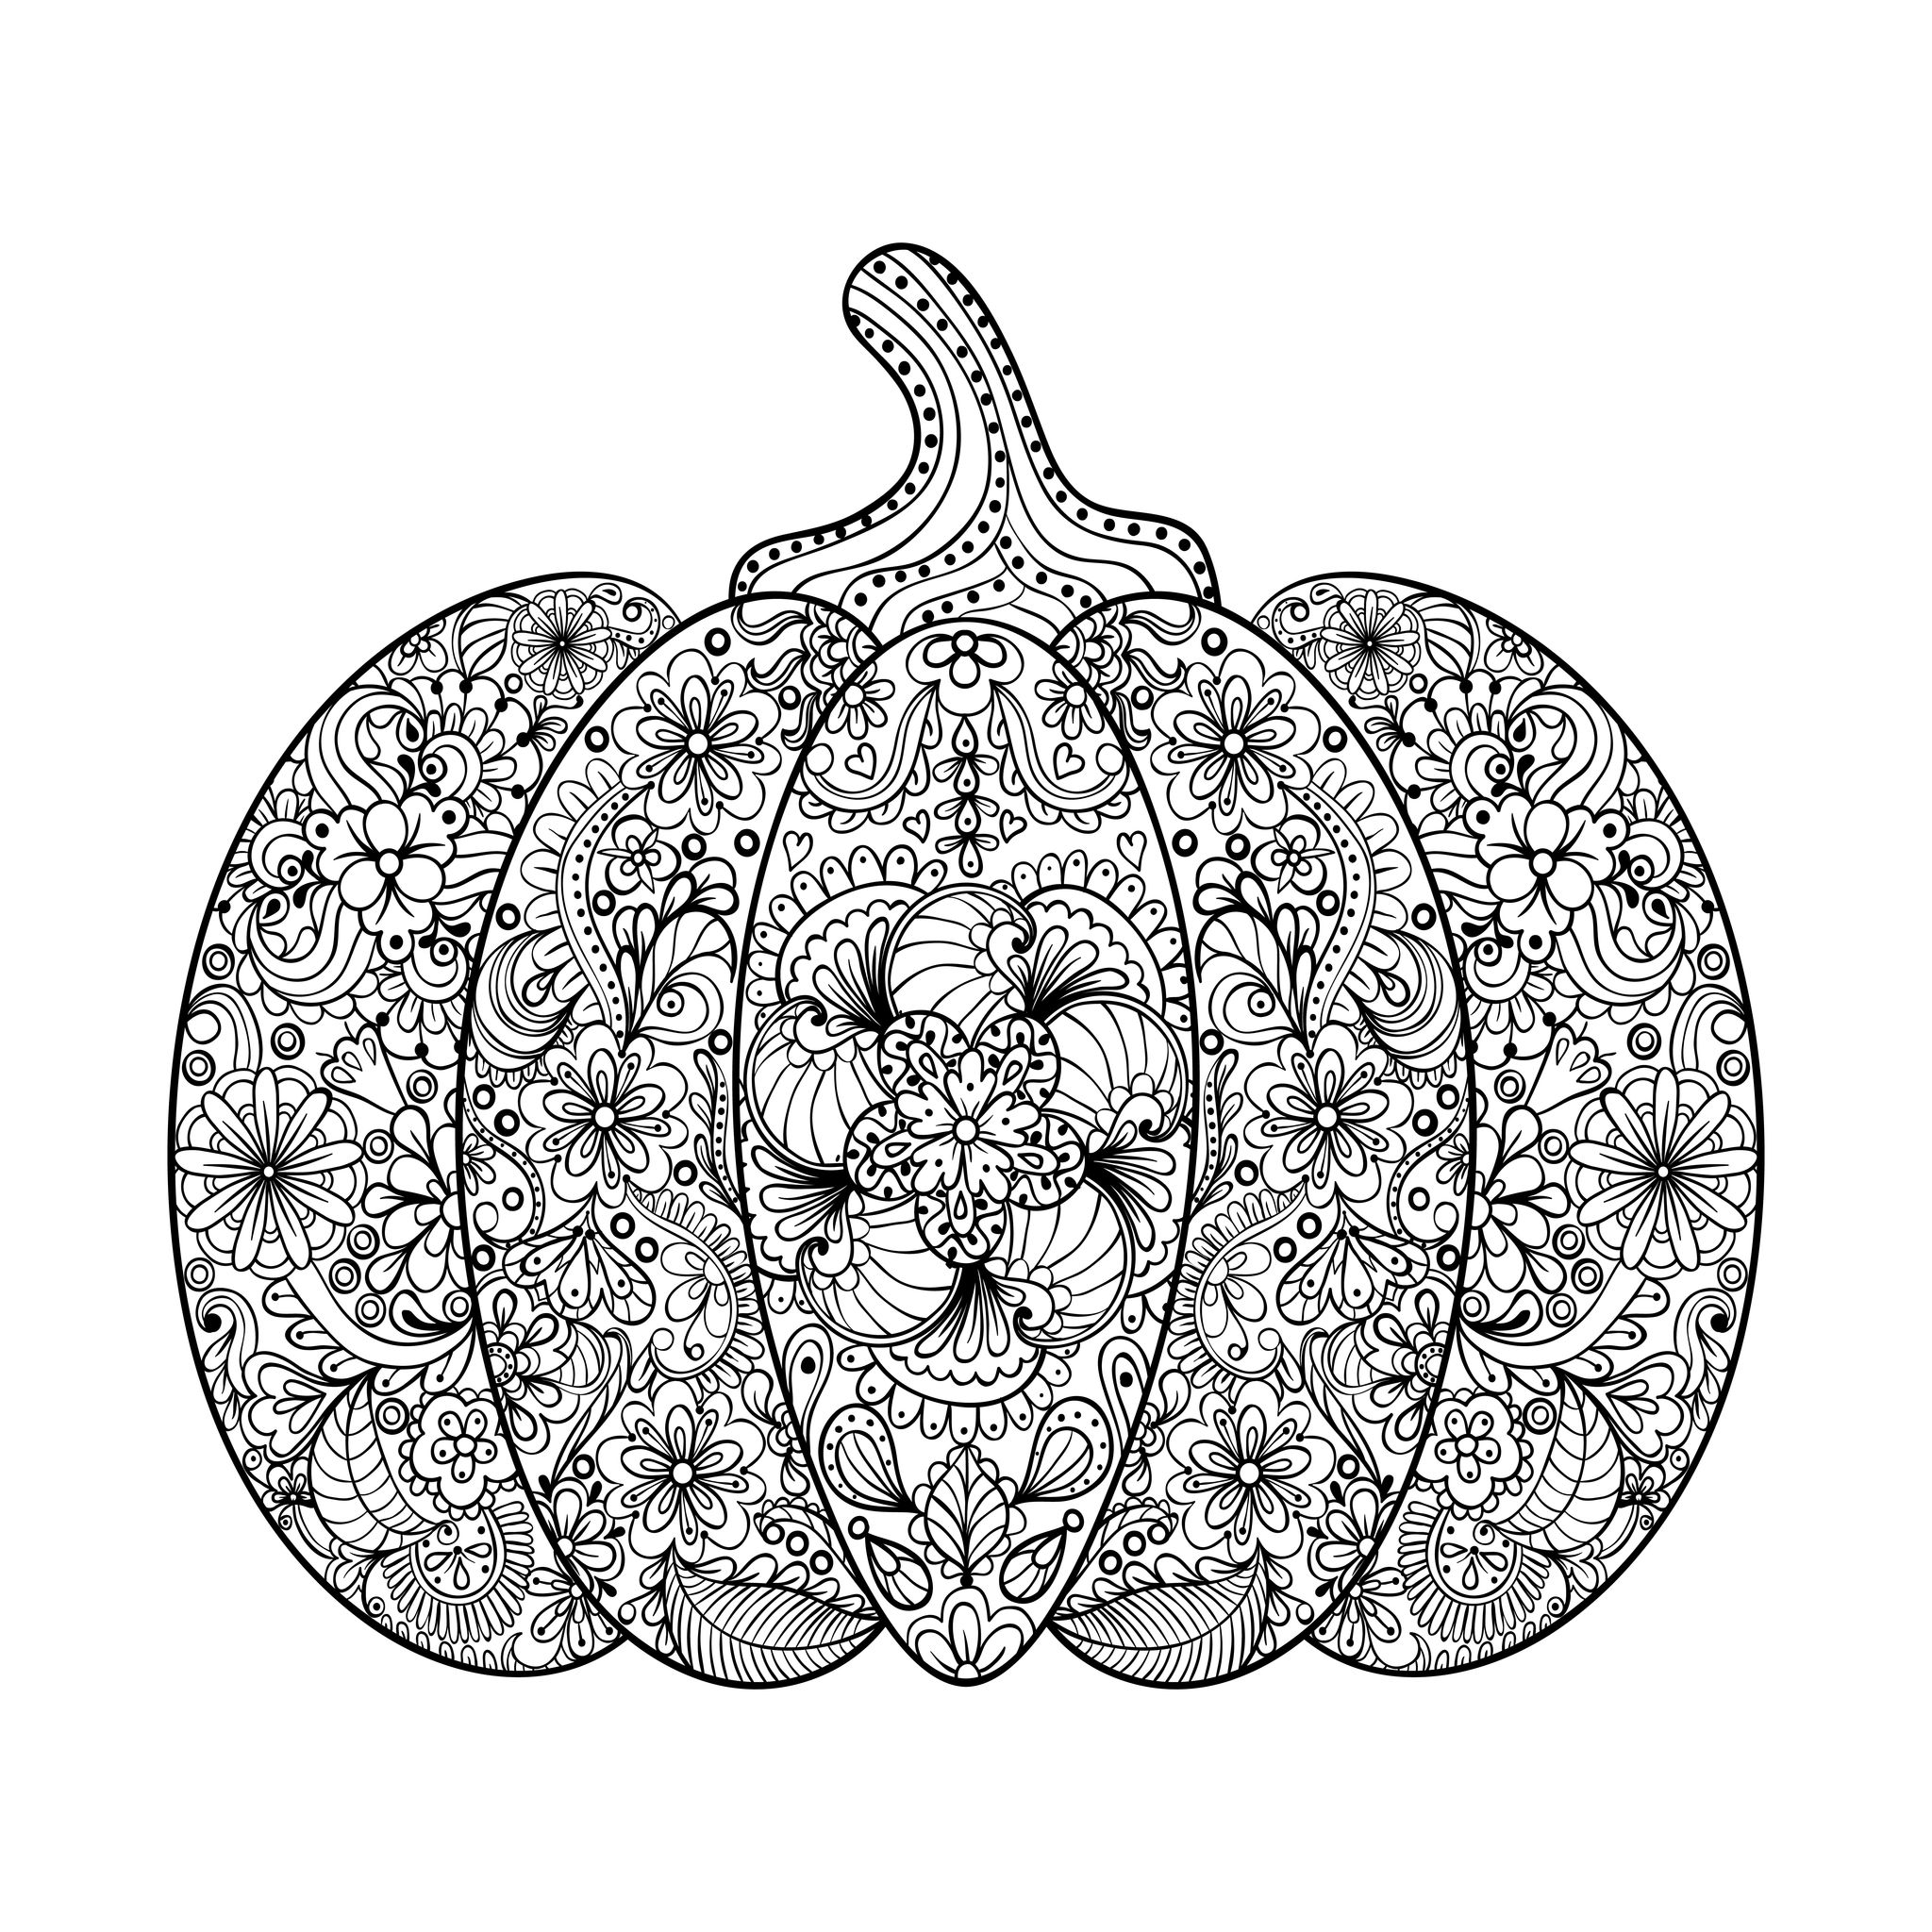 halloween coloring pages pumpkin free printable pumpkin coloring pages for kids coloring halloween pumpkin pages